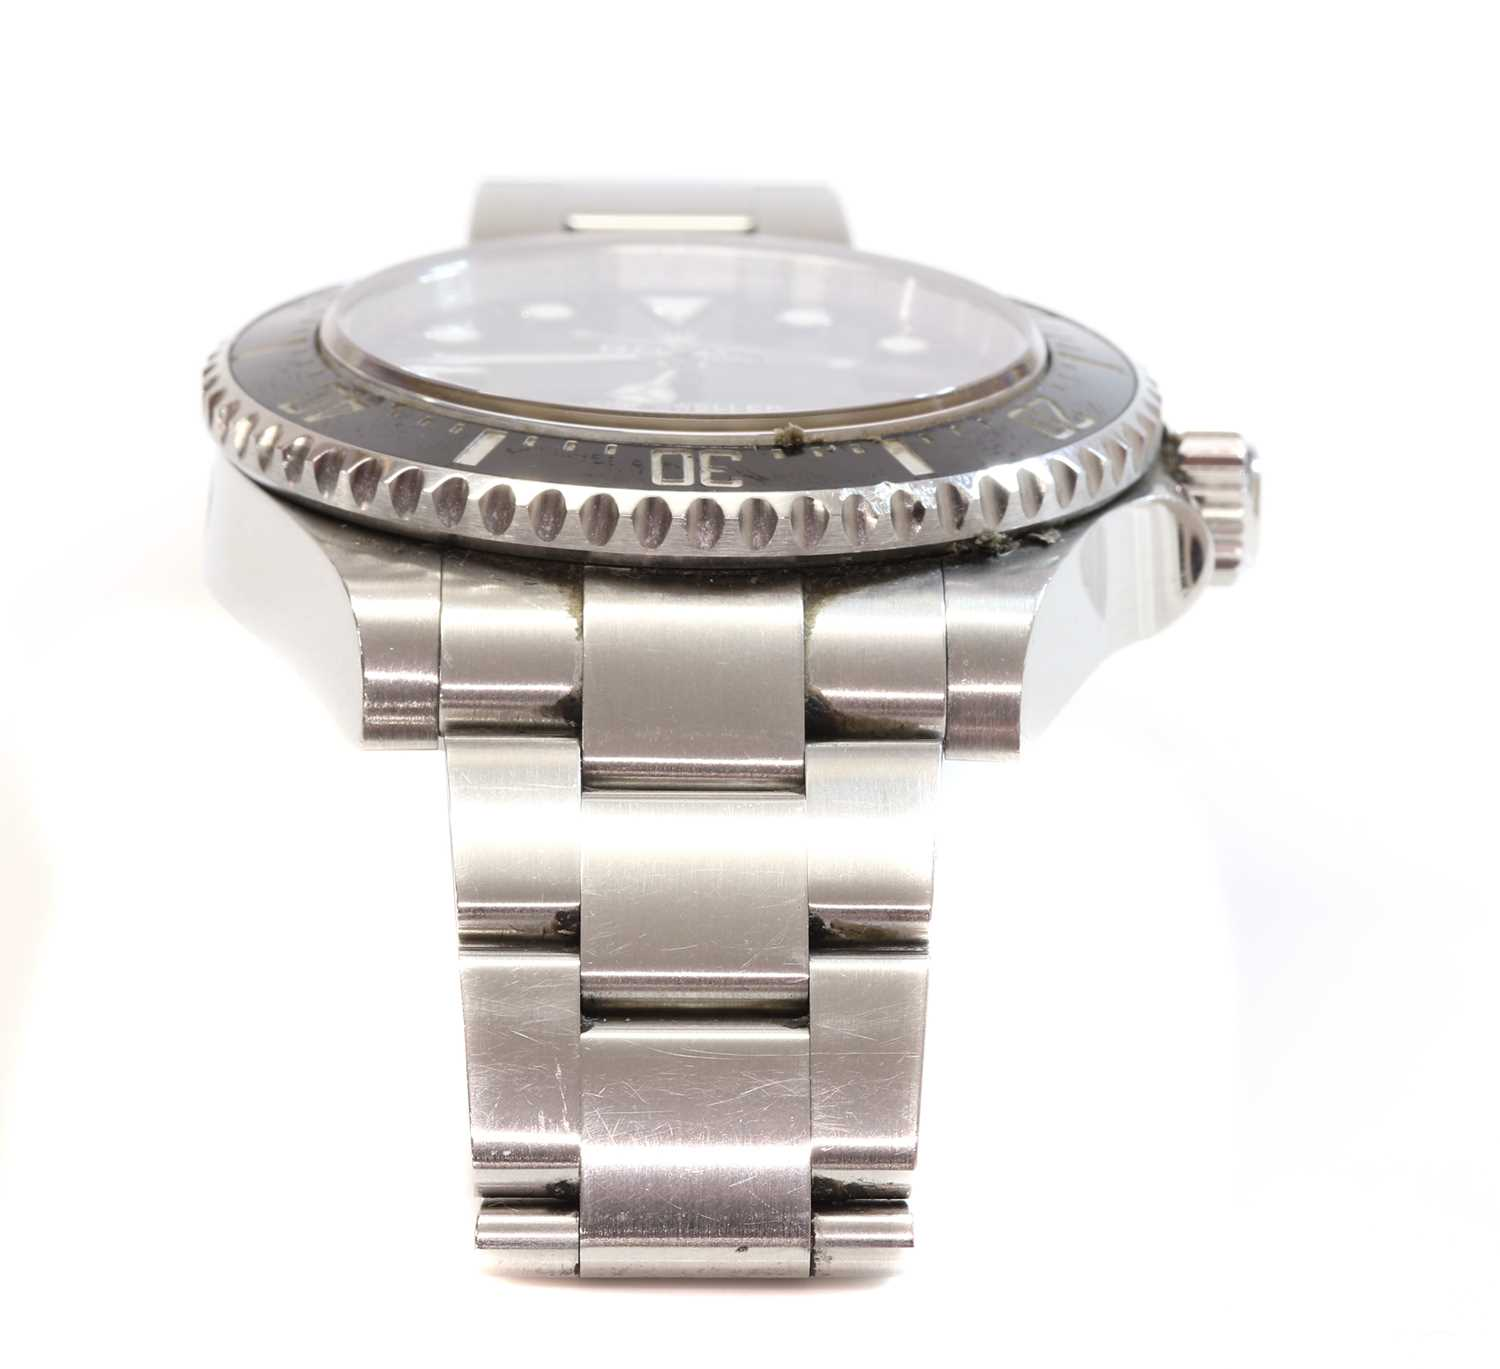 A gentlemen's stainless steel Rolex 'Oyster Perpetual Sea Dweller' automatic bracelet watch, c.2015, - Image 8 of 14